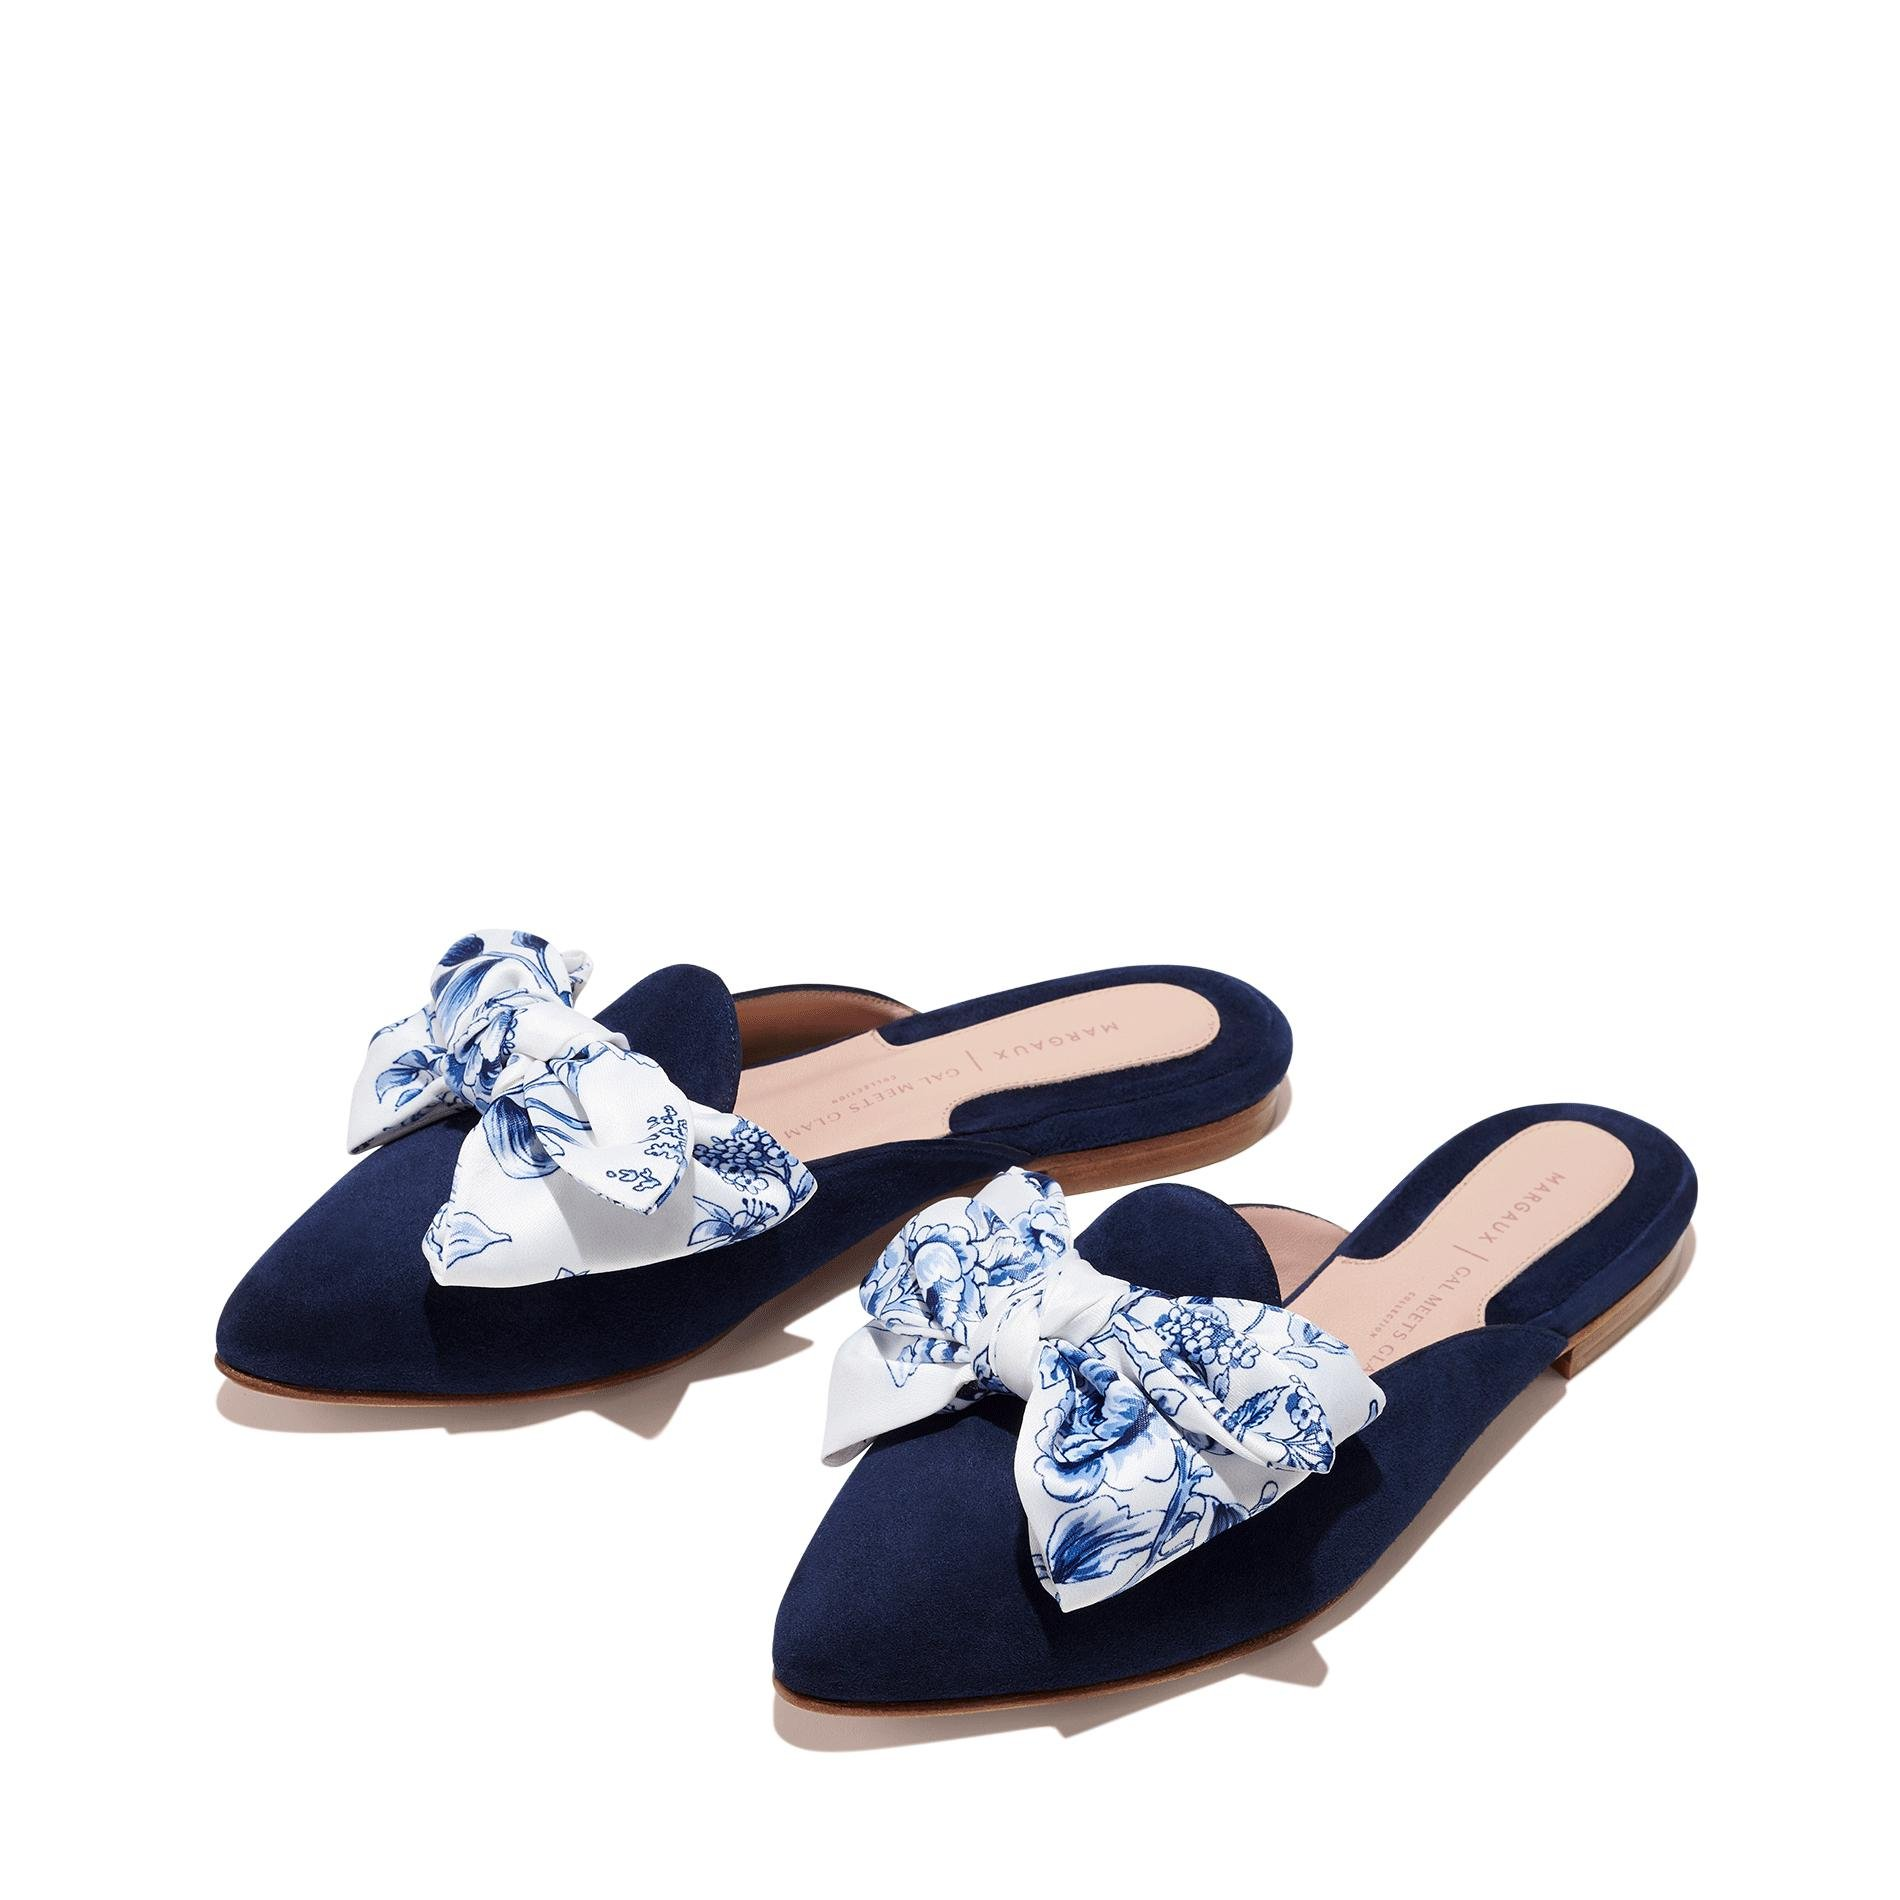 Gal Meets Glam x Margaux - The Mule in Navy Suede